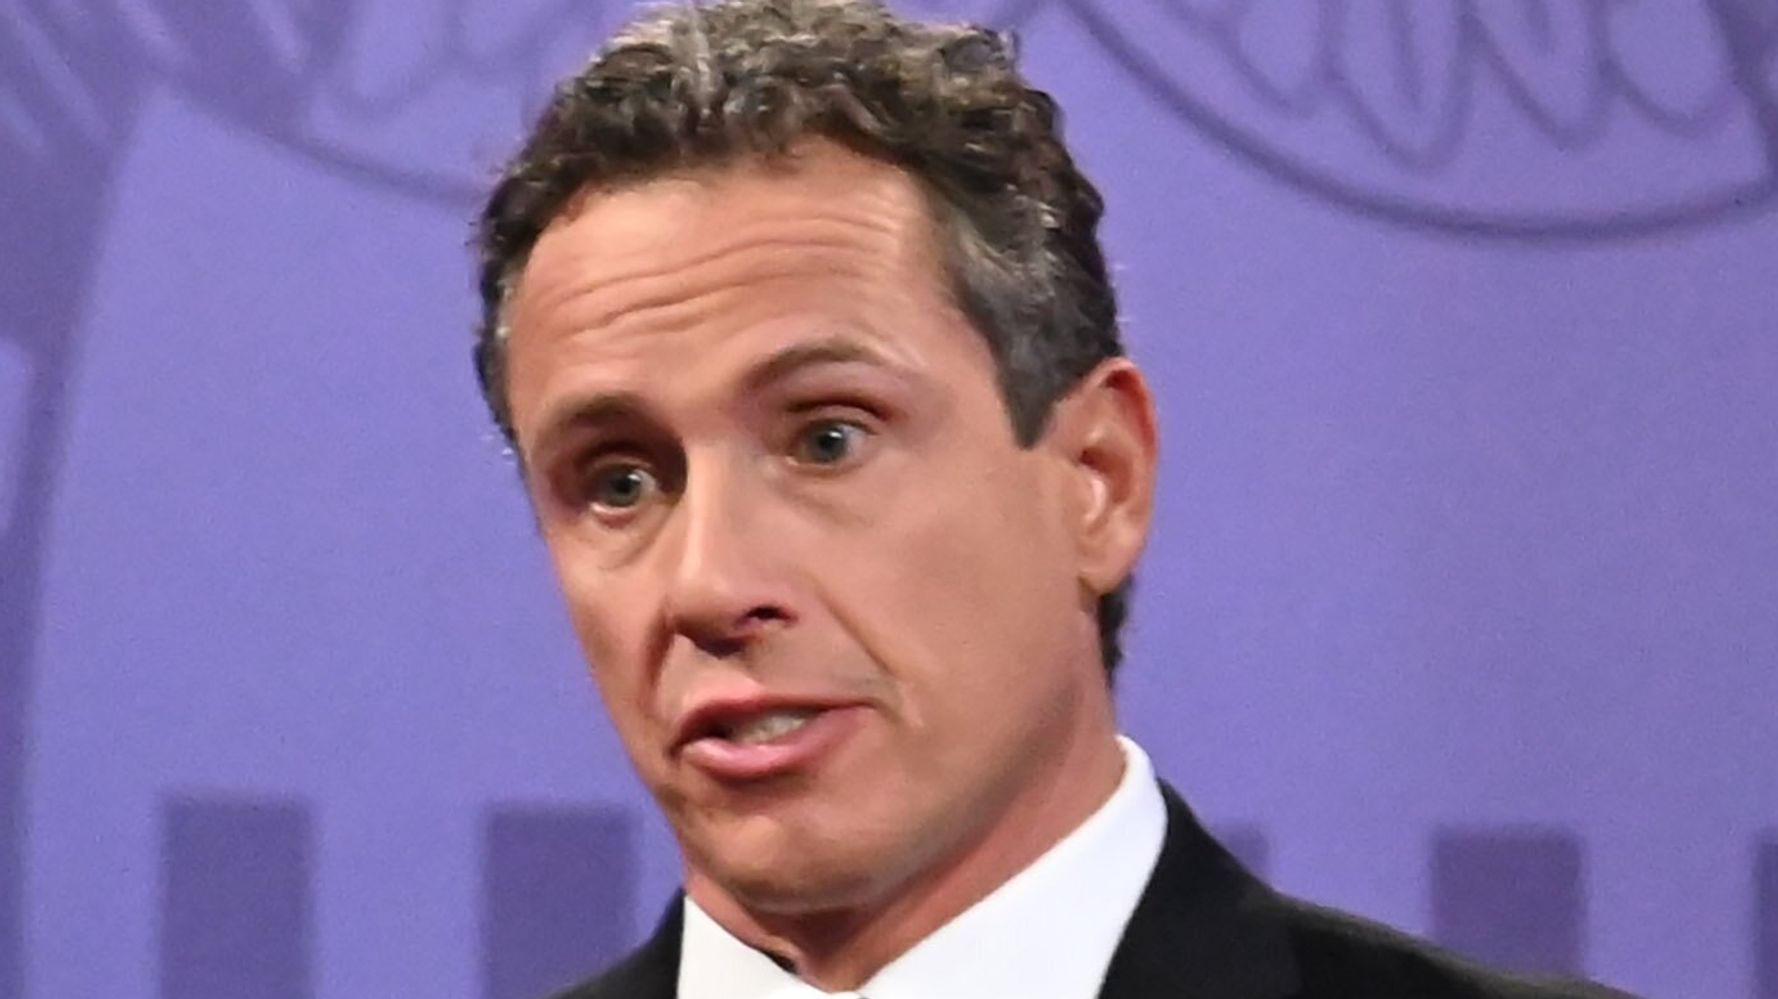 Westlake Legal Group 5da04e0a210000c3073442be Cuomo Bombs With Gender Pronoun Joke At LGBTQ Town Hall, Immediately Apologizes